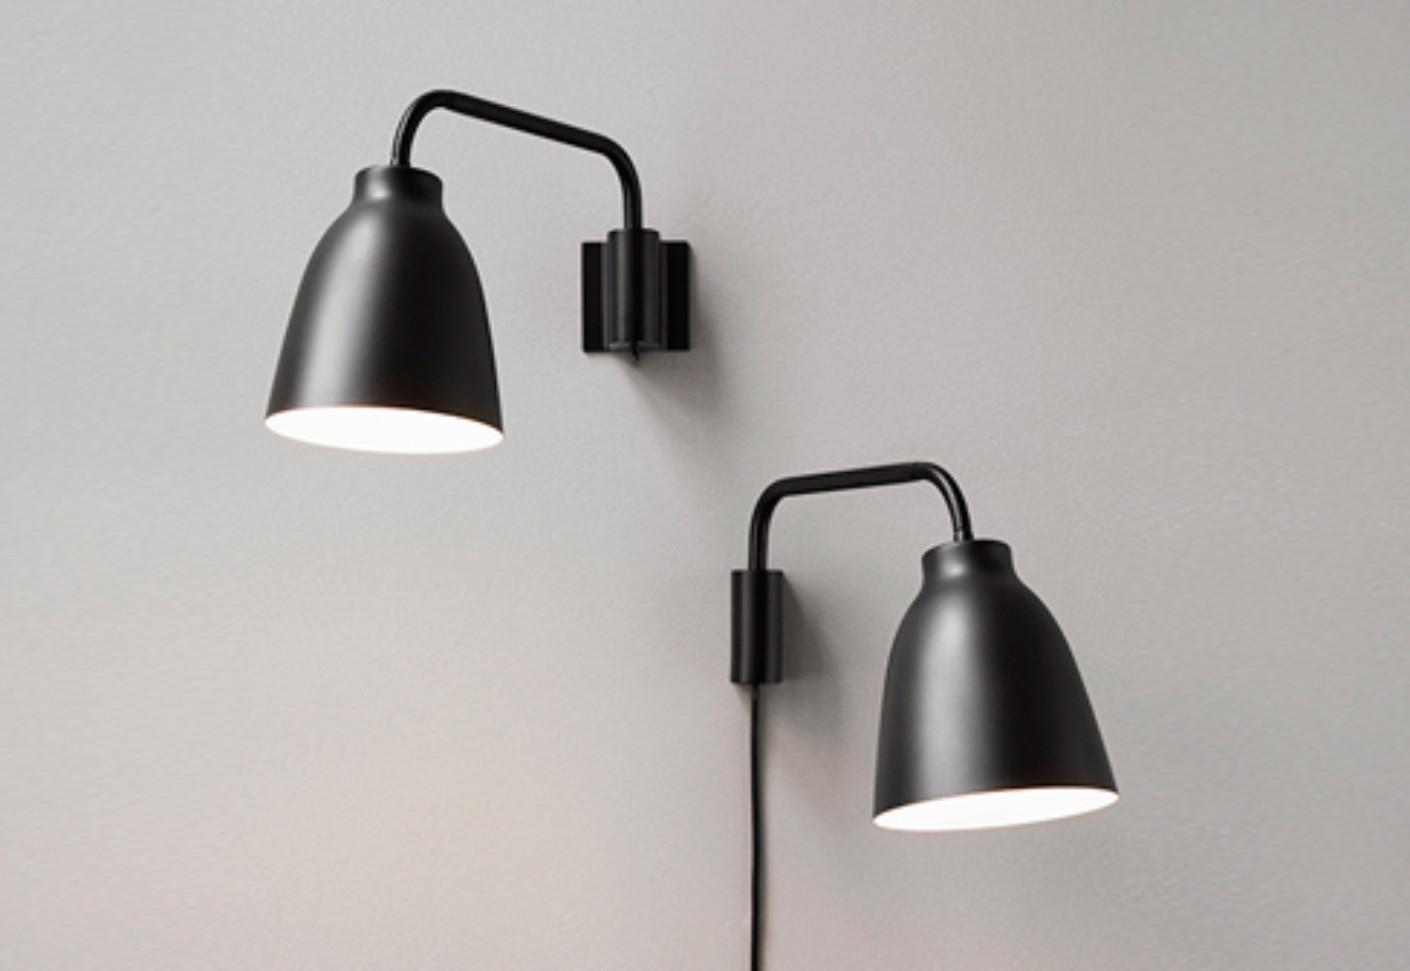 Outdoor Wall Mounted Light Fittings